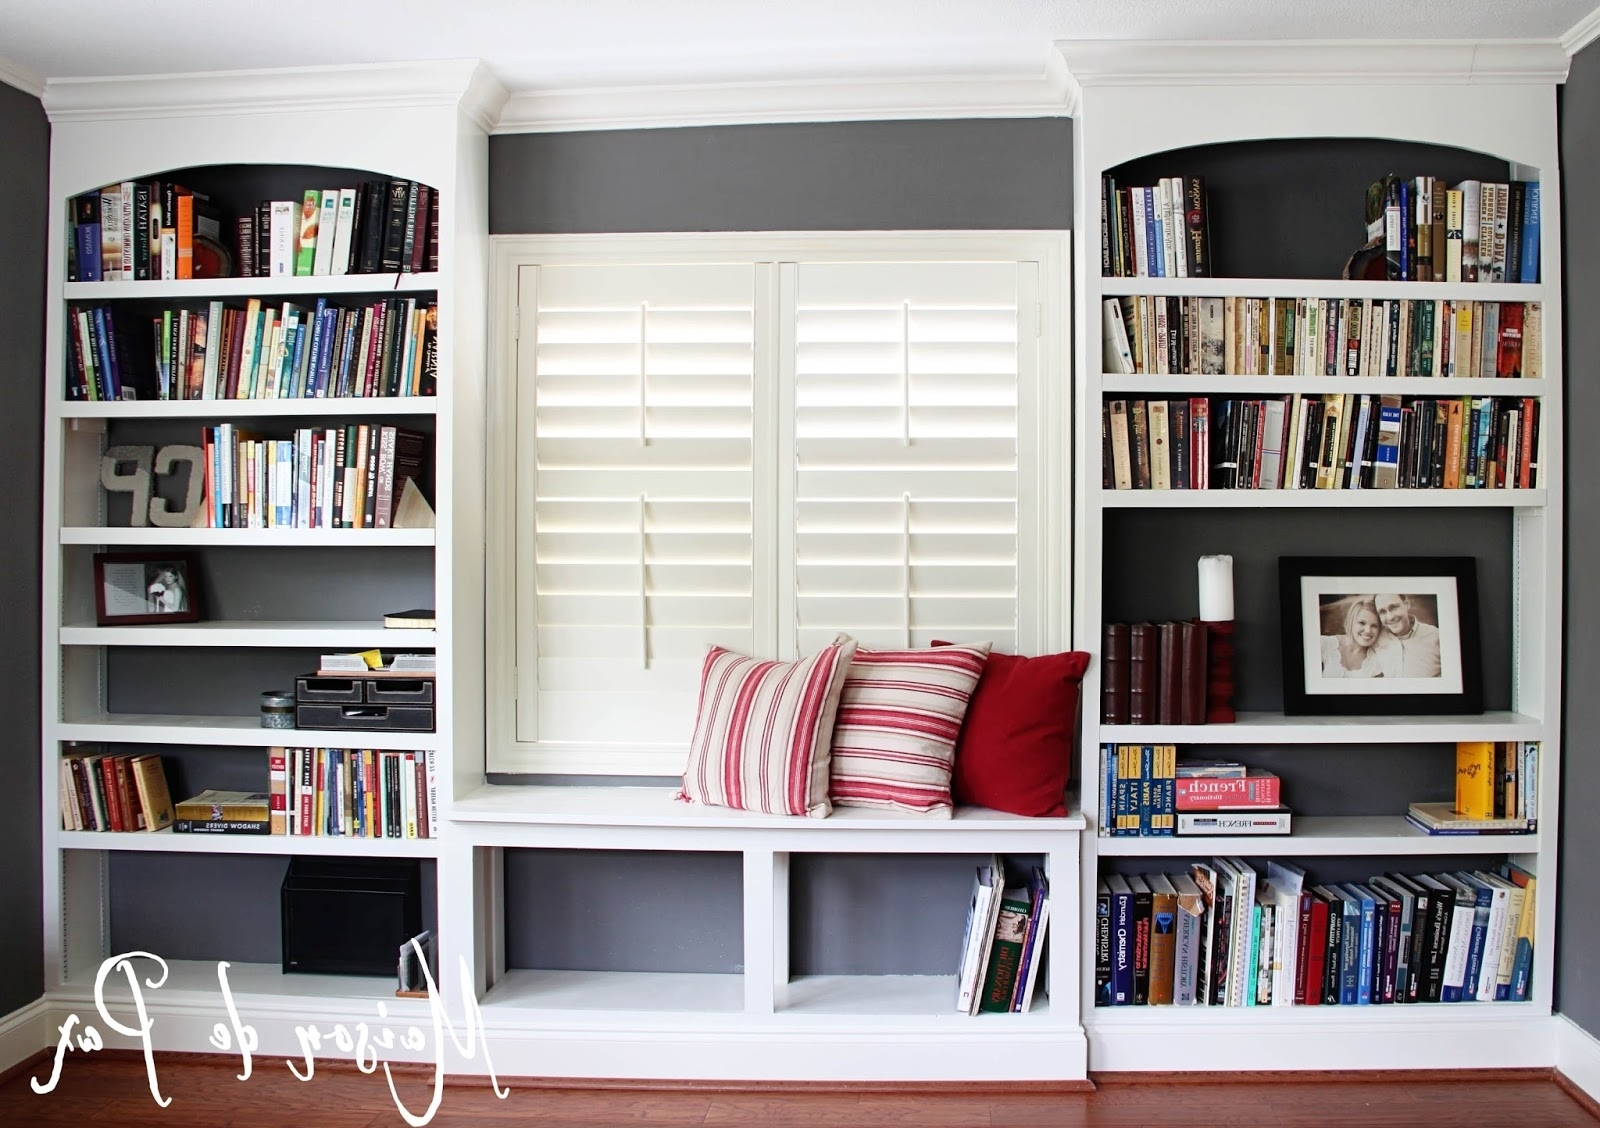 Diy Built In Bookcases Throughout Current Diy Built In Bookshelves – Maison De Pax (View 5 of 15)